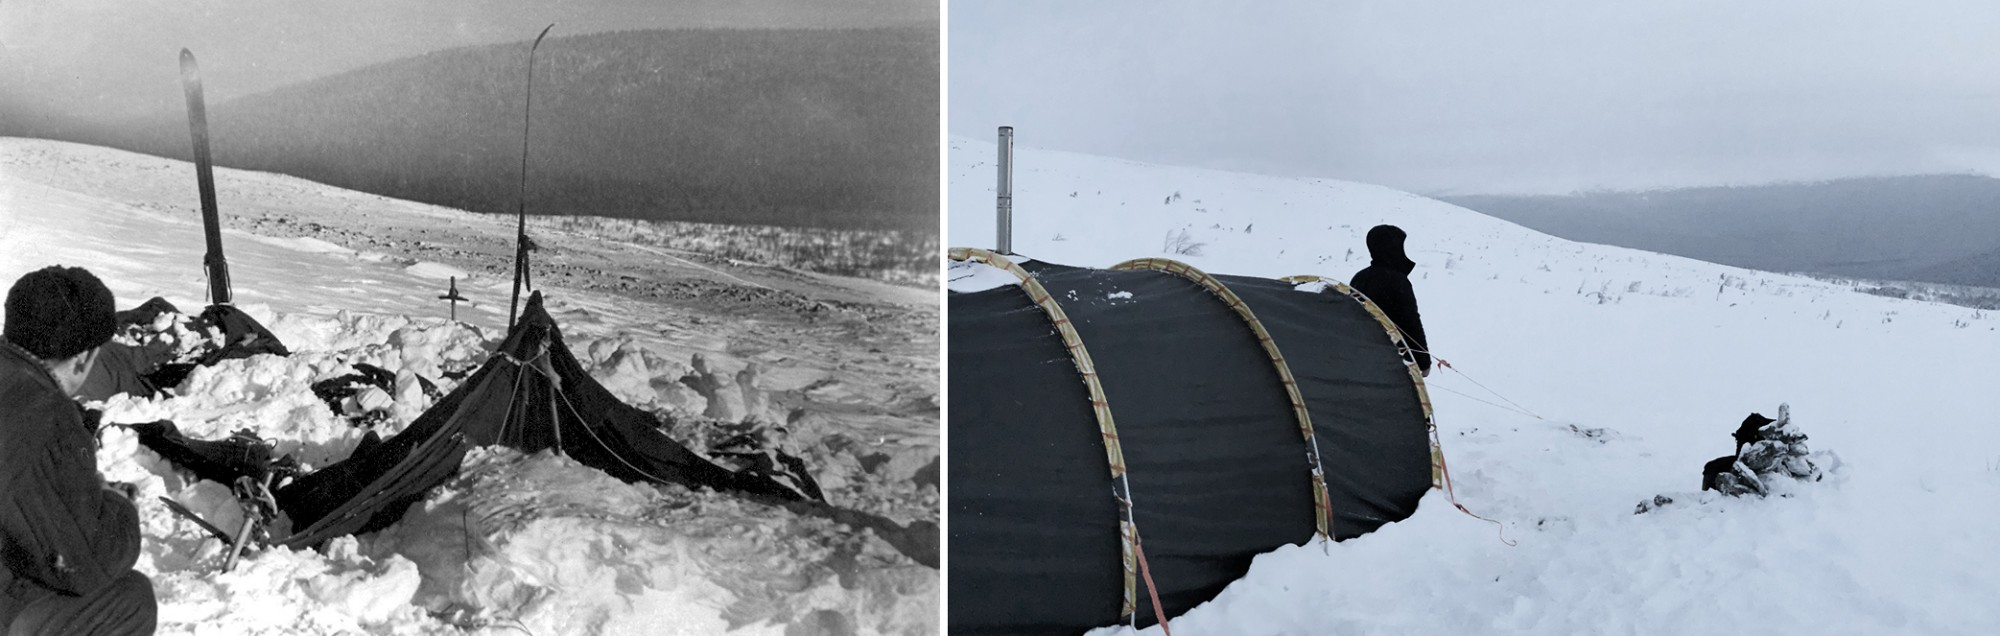 Dyatlov Pass: Dyatlov group's tent was found the 26th of February partly covered by snow